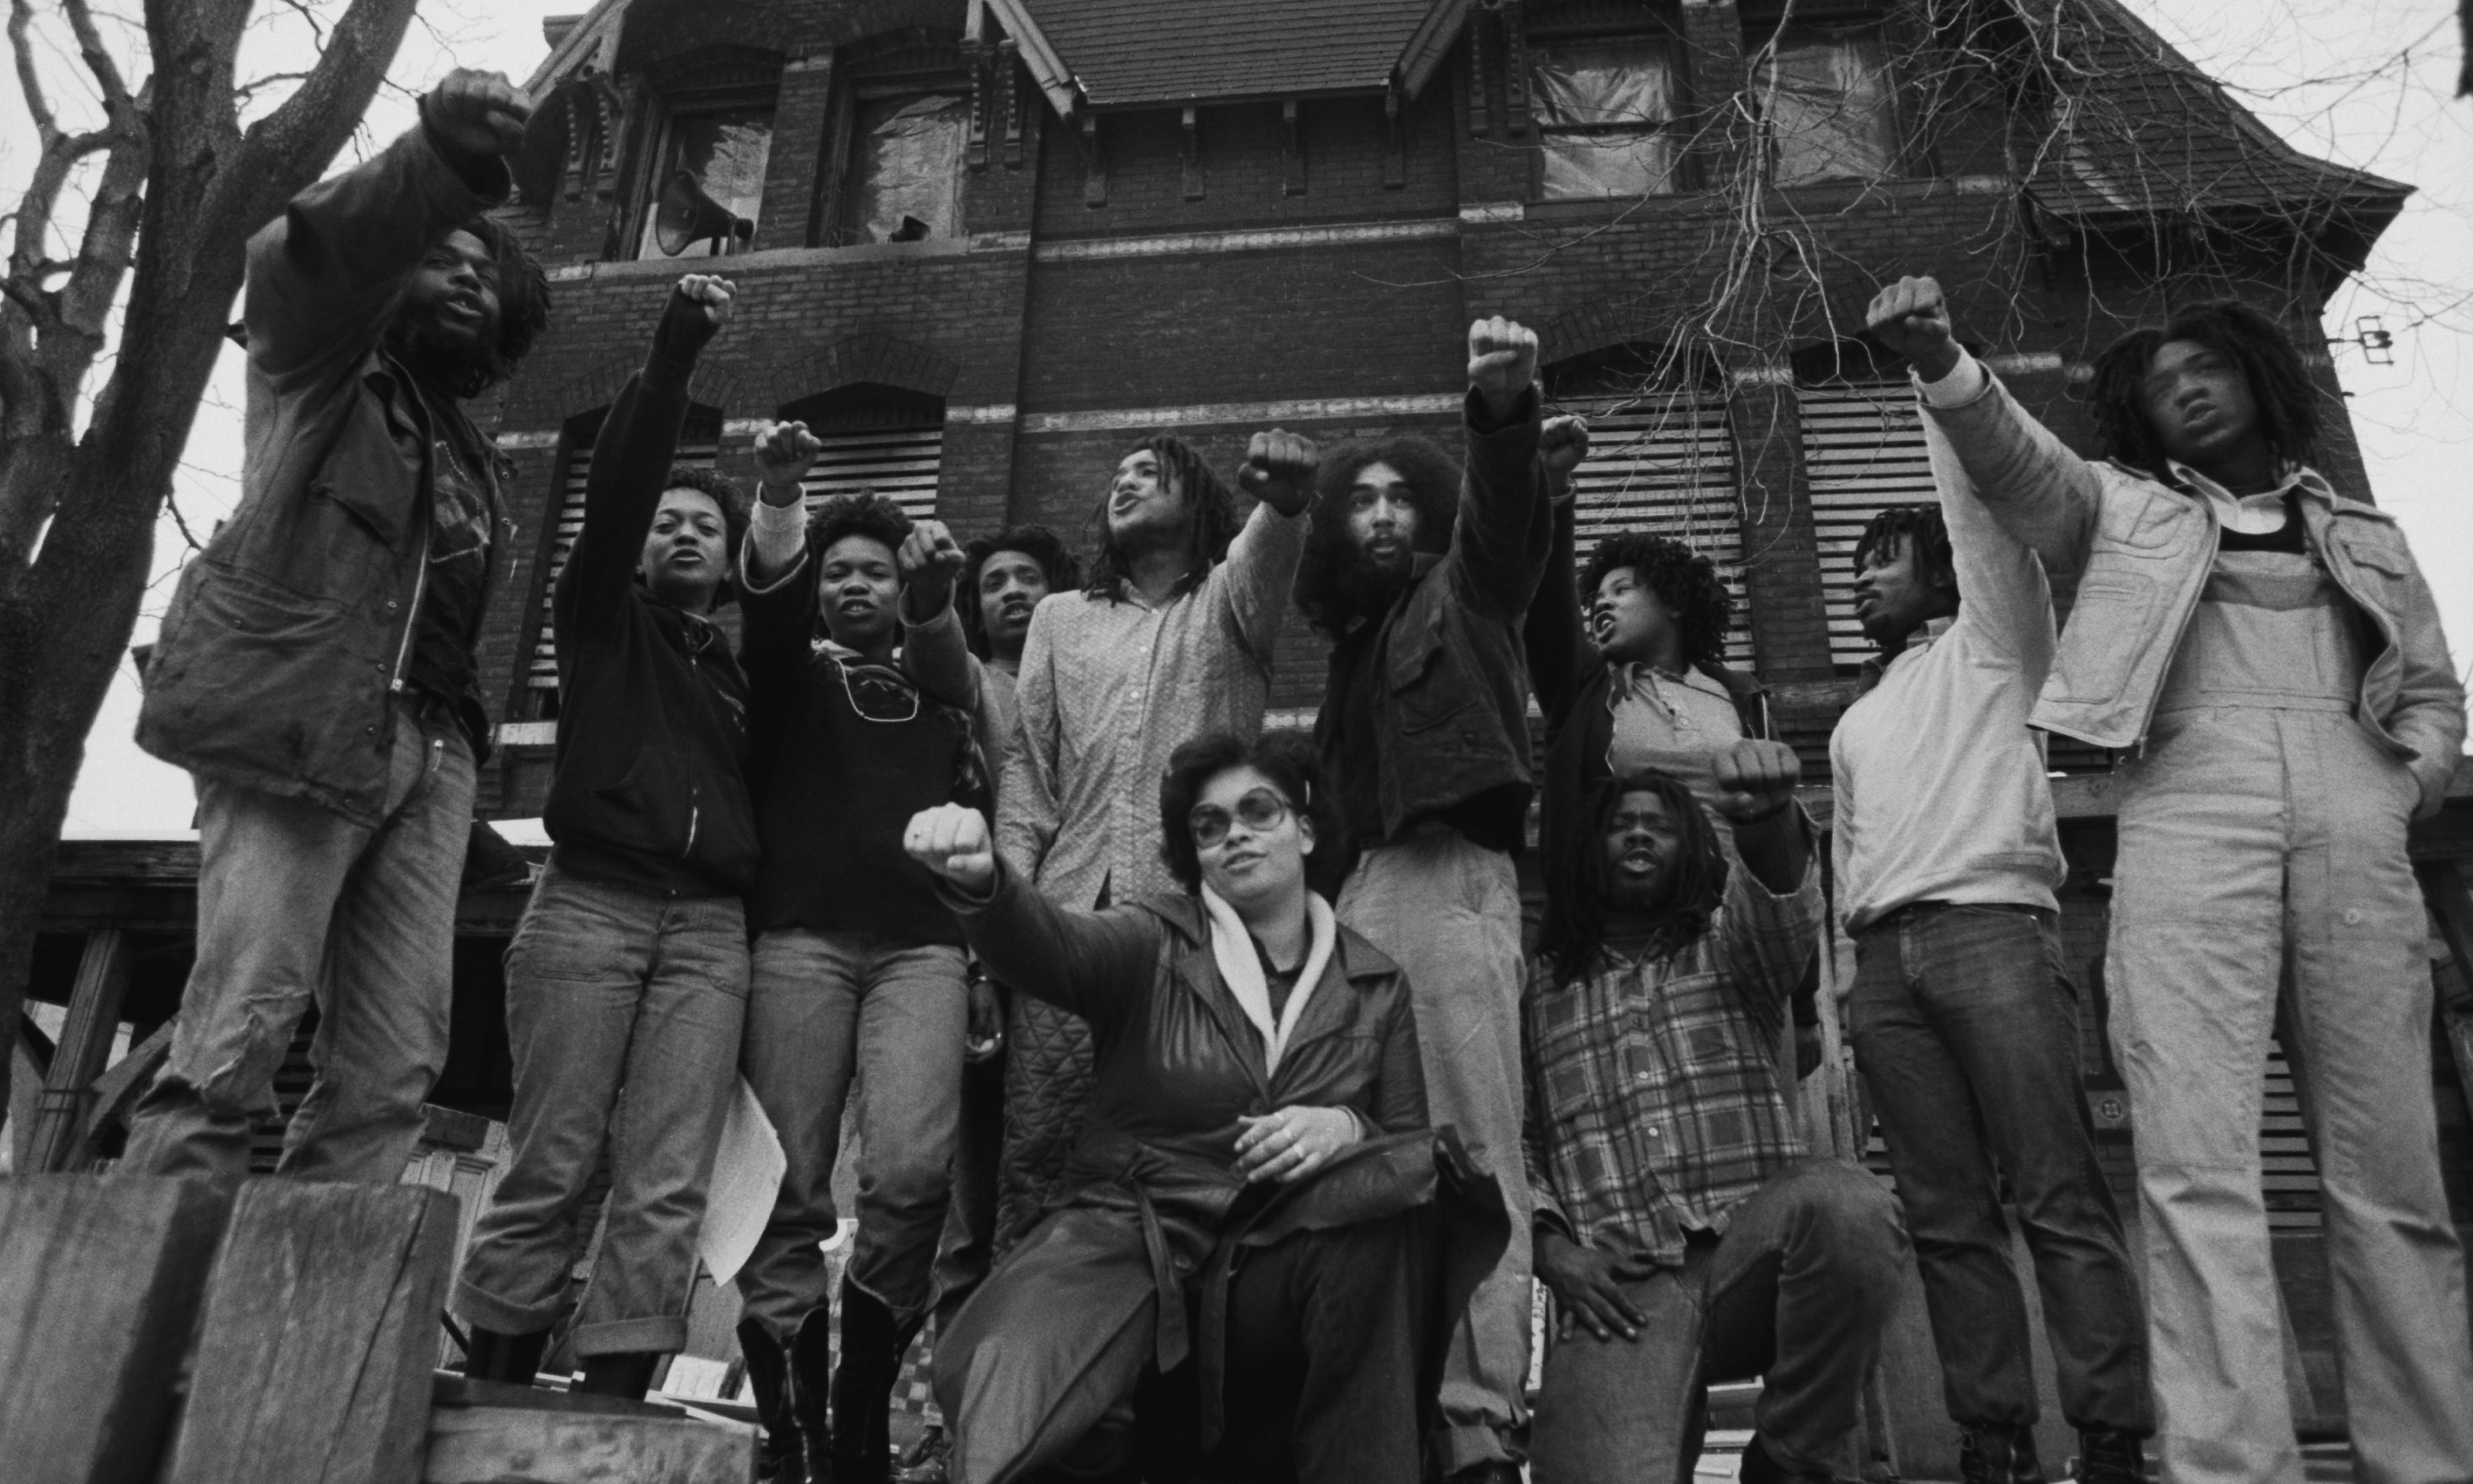 Move 9 women freed after 40 years in jail over Philadelphia police siege